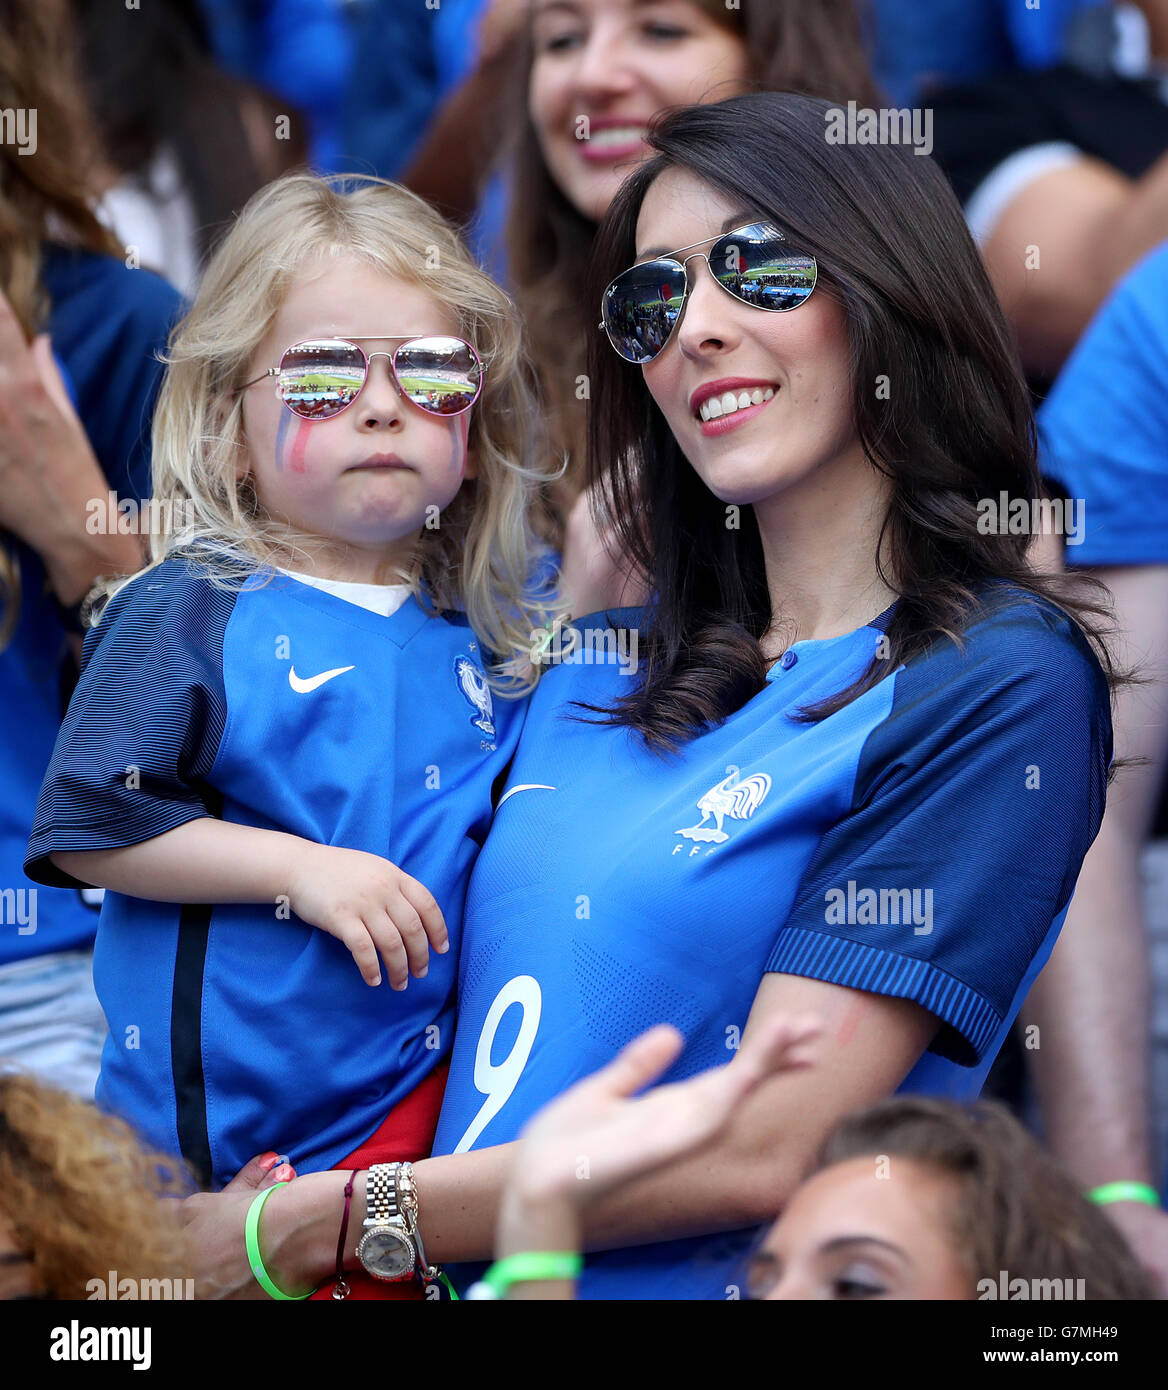 Jennifer Giroud Wife Of Frances Olivier And Their Daughter Jade In The Stands Before Round 16 Match At Stade De Lyon